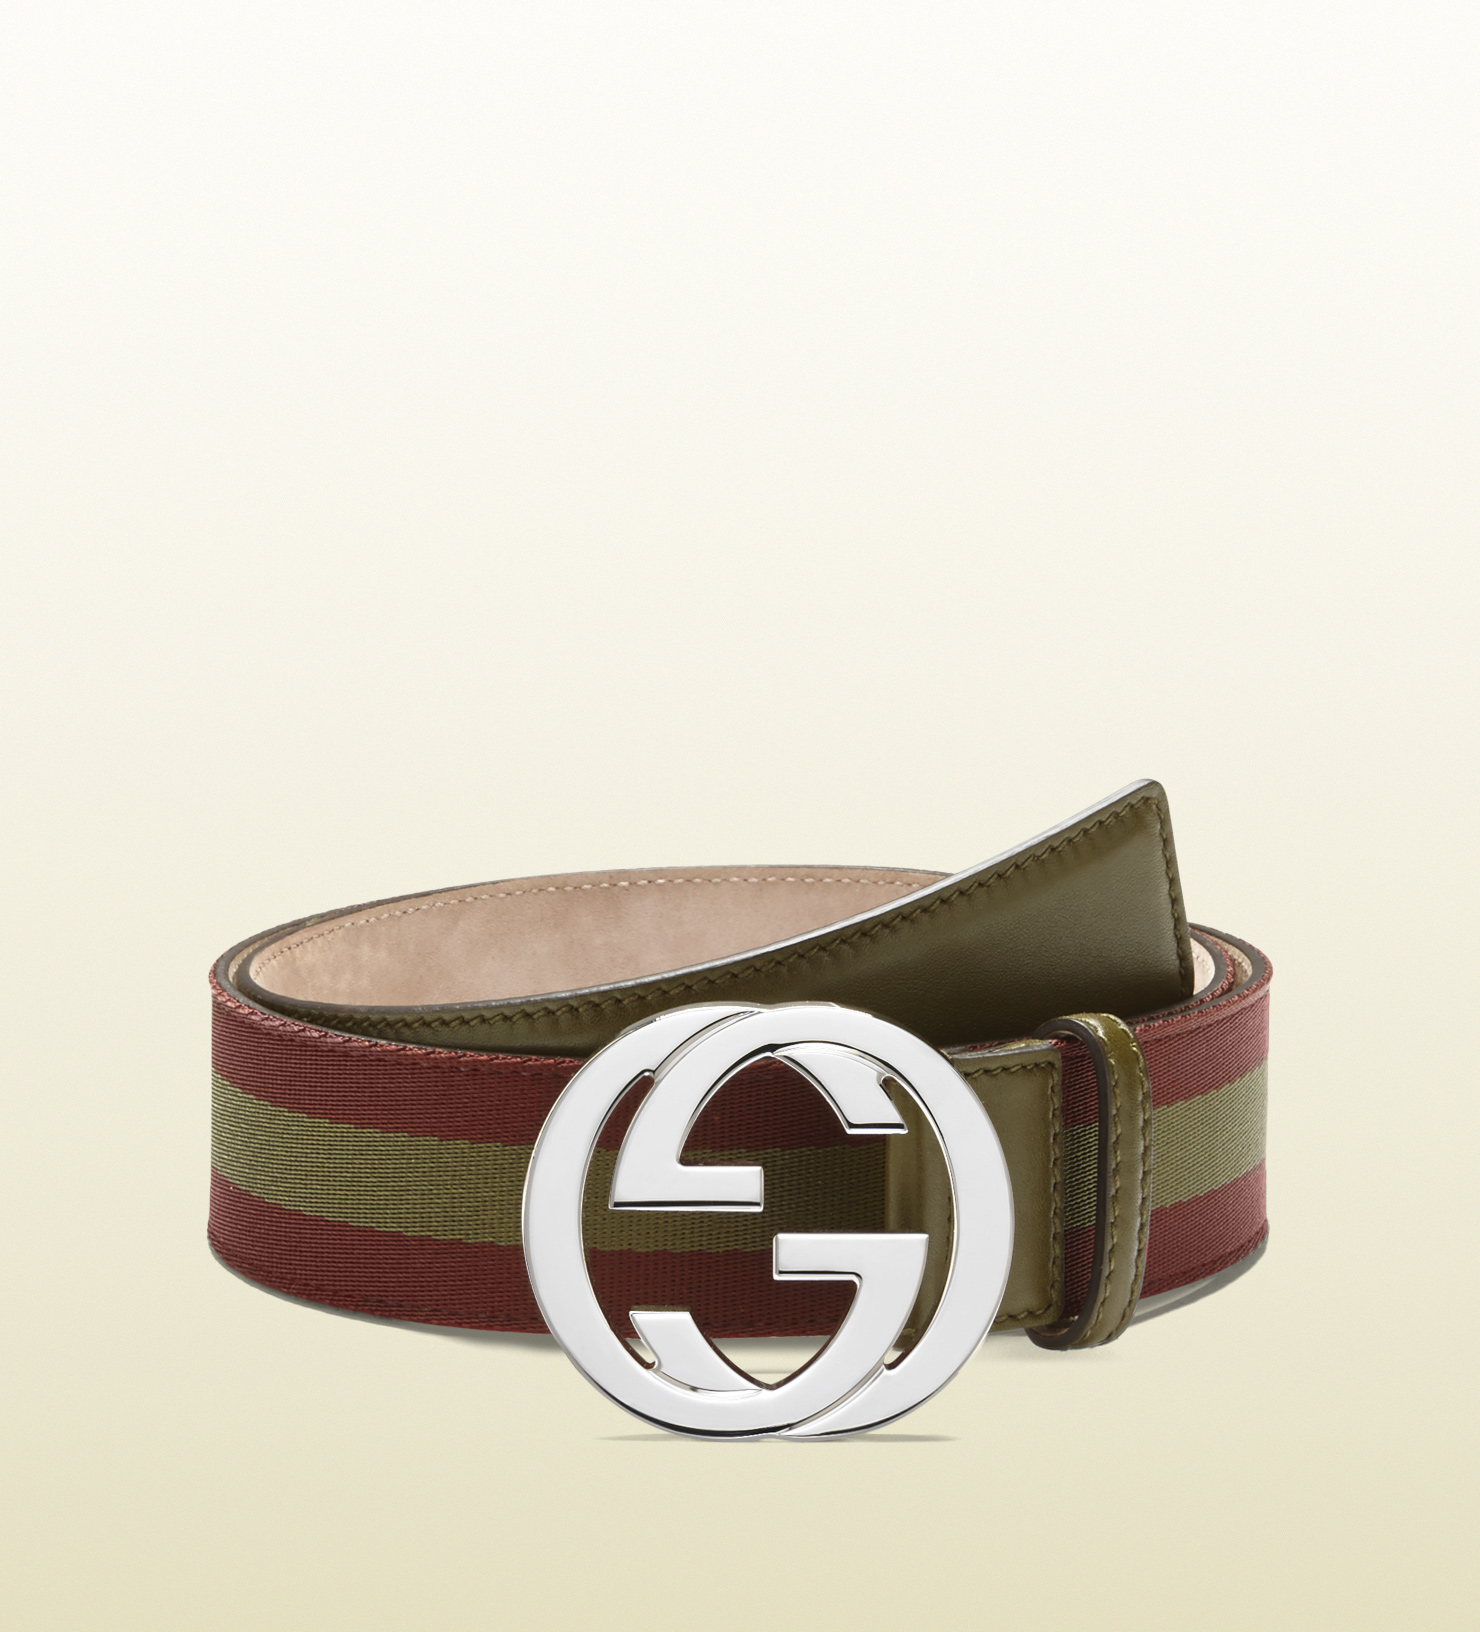 39e70c58b Gucci Nylon Web Belt with Interlocking G Buckle in Brown for Men - Lyst